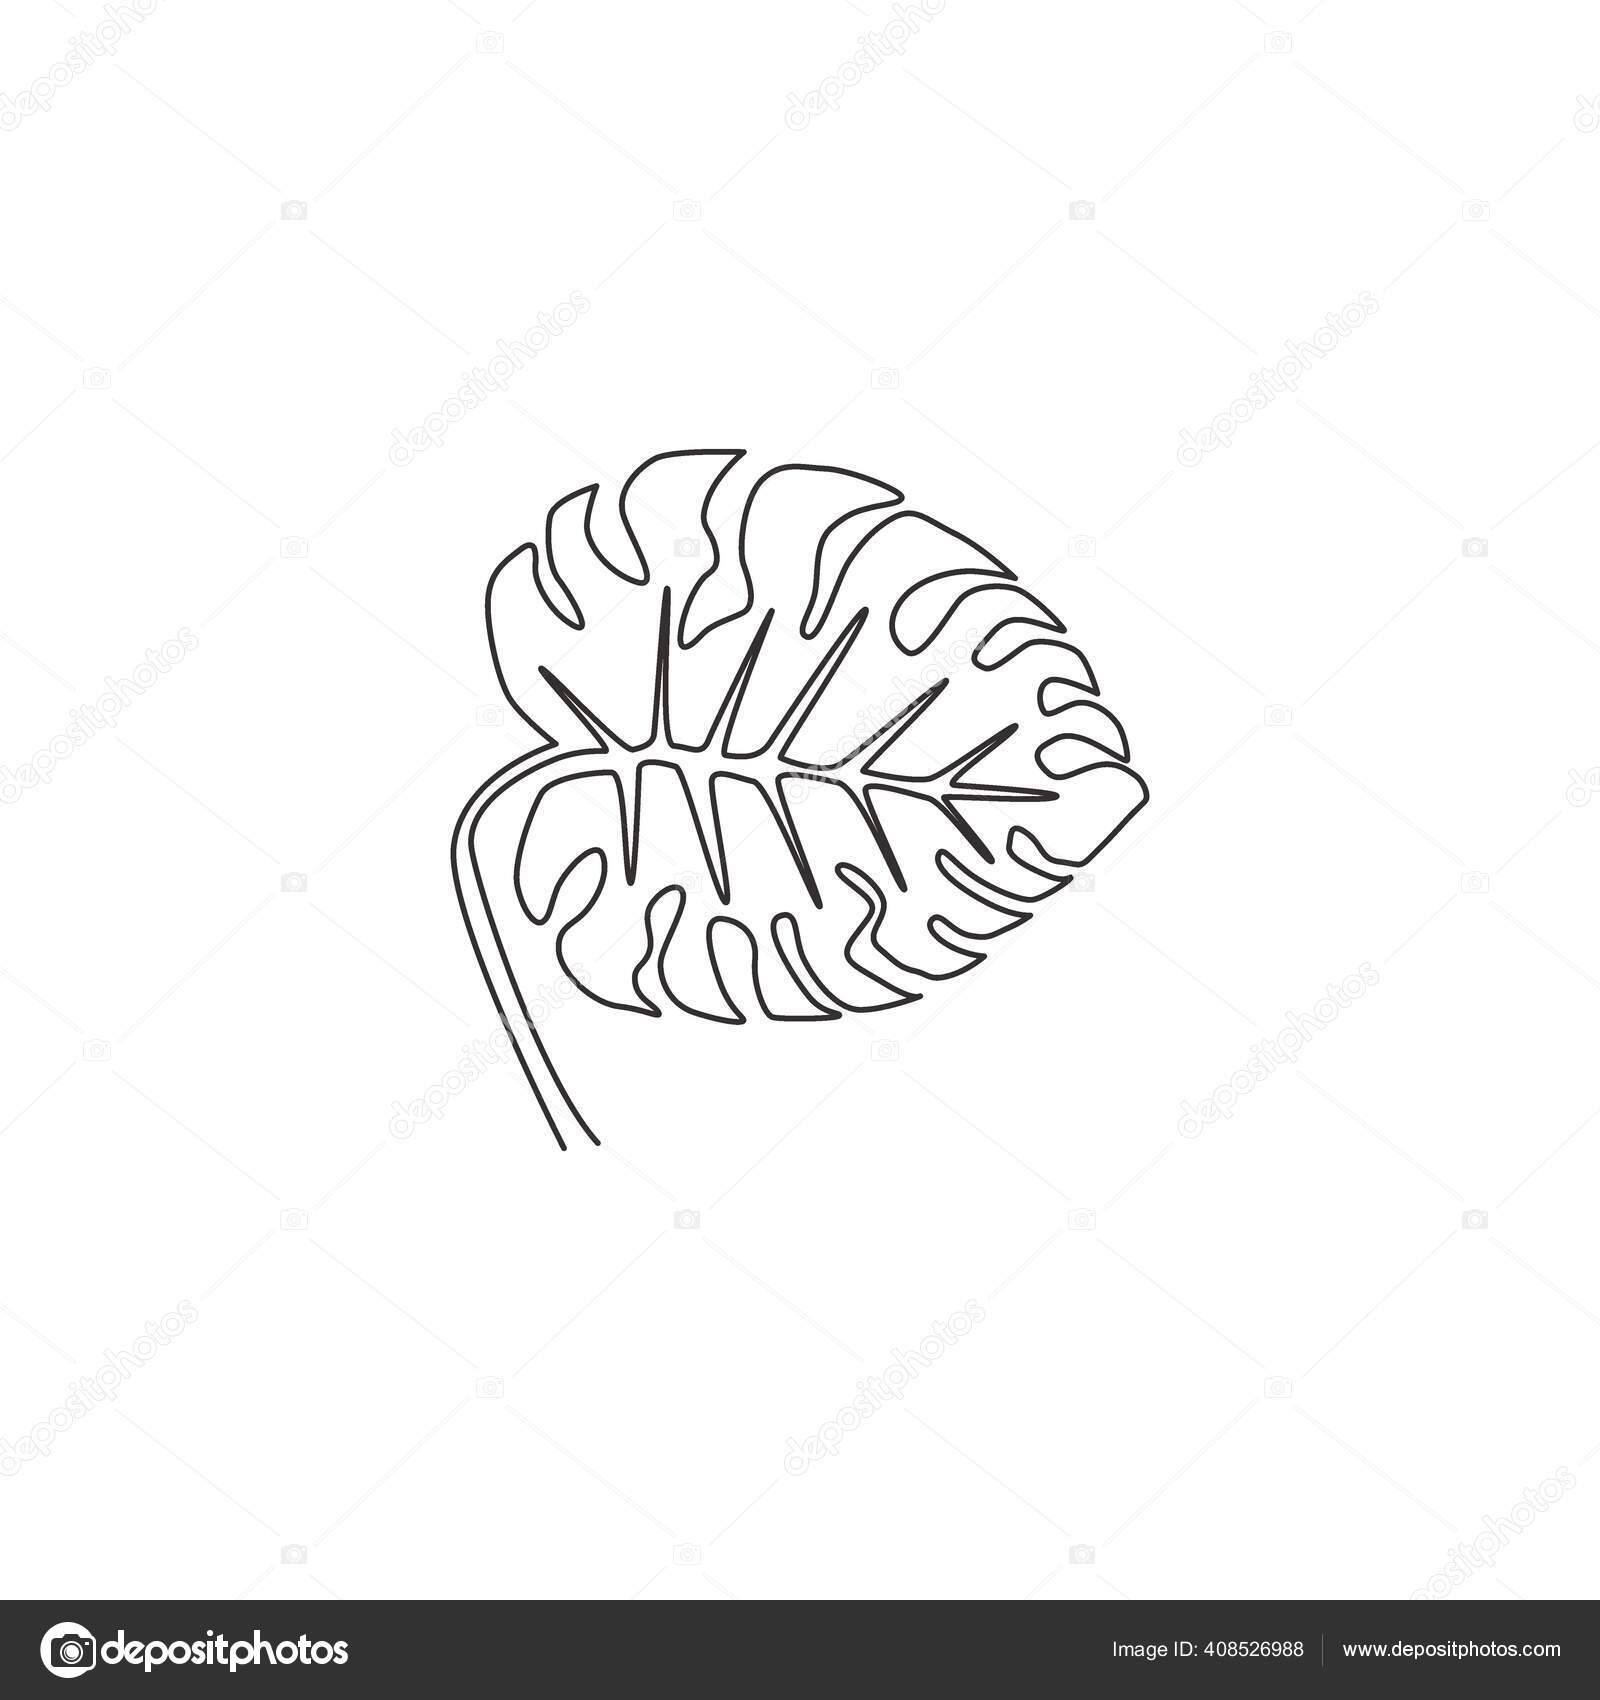 One Single Line Drawing Cute Beauty Tropical Leaf Monstera Plant Stock Vector C Simpleline 408526988 Tropical leaf, printable art, monstera leaves, tropical leaves, tropical decor, green wall decor, instant download, wall art. https depositphotos com 408526988 stock illustration one single line drawing cute html